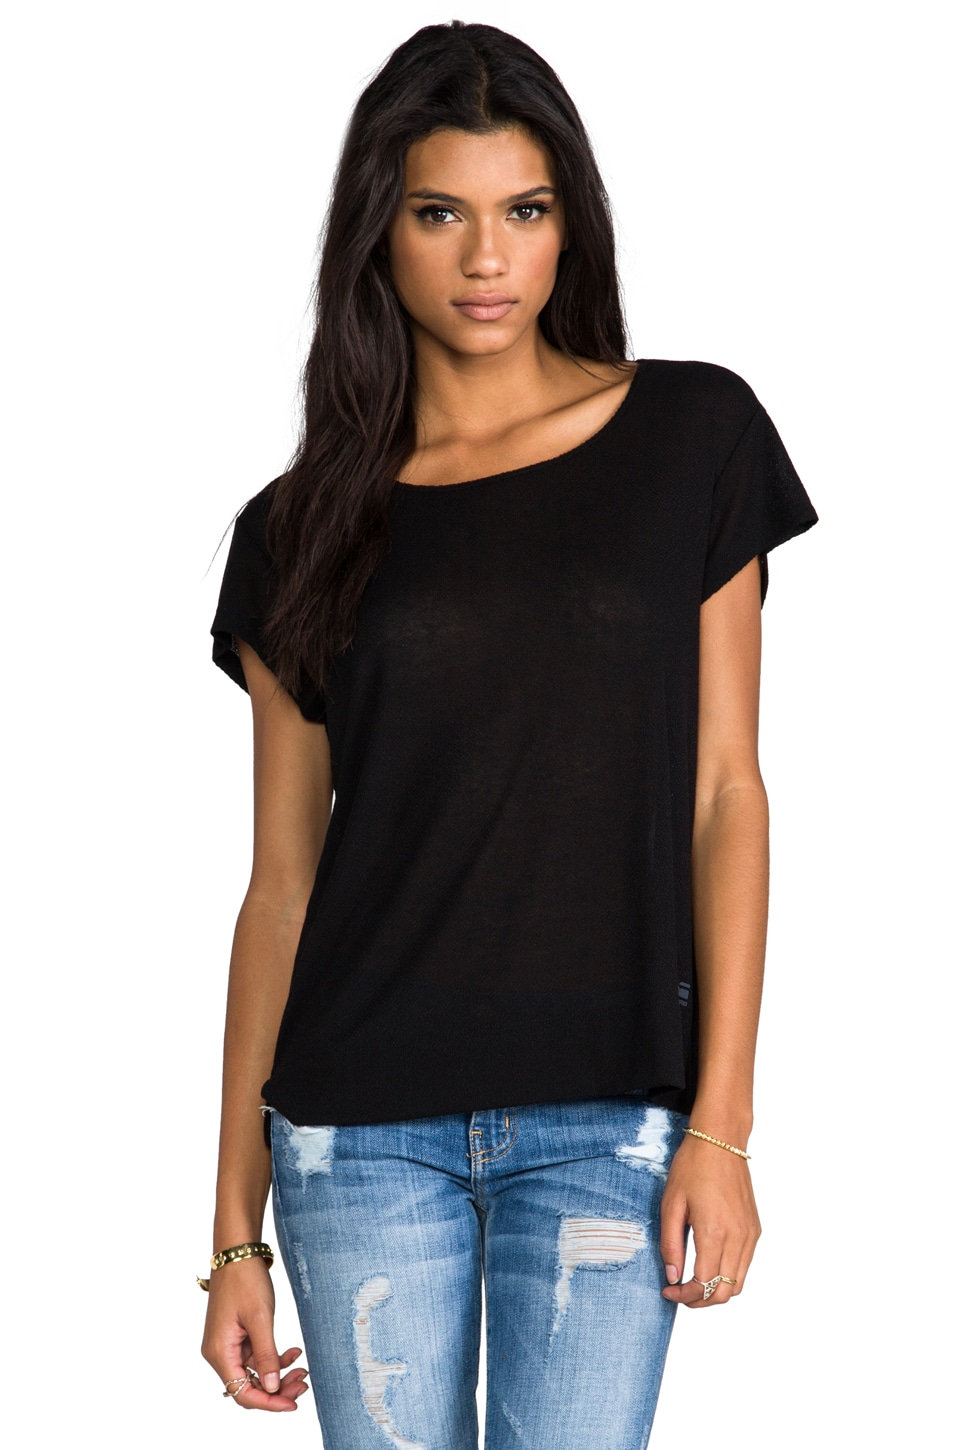 G-Star Sela R Tee in Black